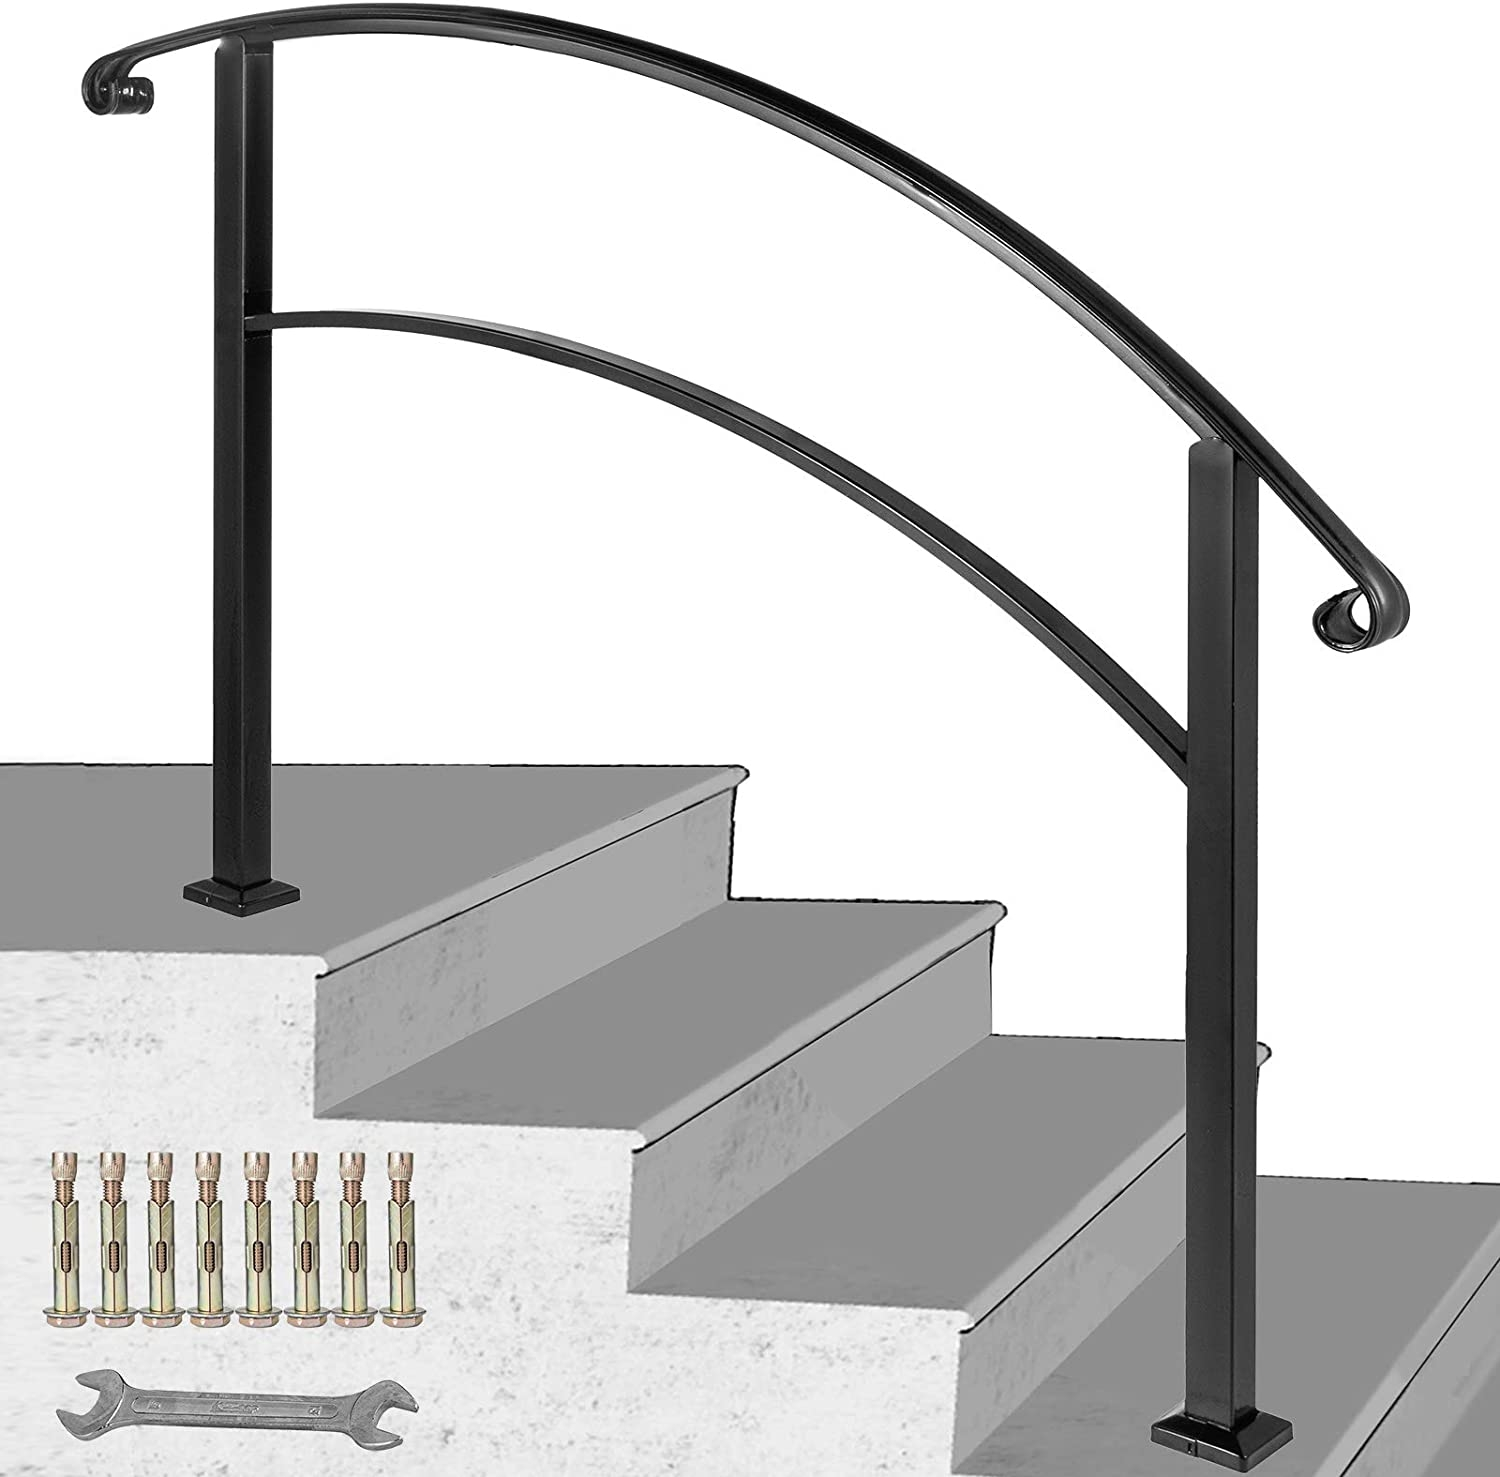 Happybuy 4 Step Handrail Fits 1 Or 4 Steps Matte Black Stair Rail | Wrought Iron Outdoor Handrails | Curved | Vintage Salvaged Outdoor Iron | Aluminum | Modern | Residential